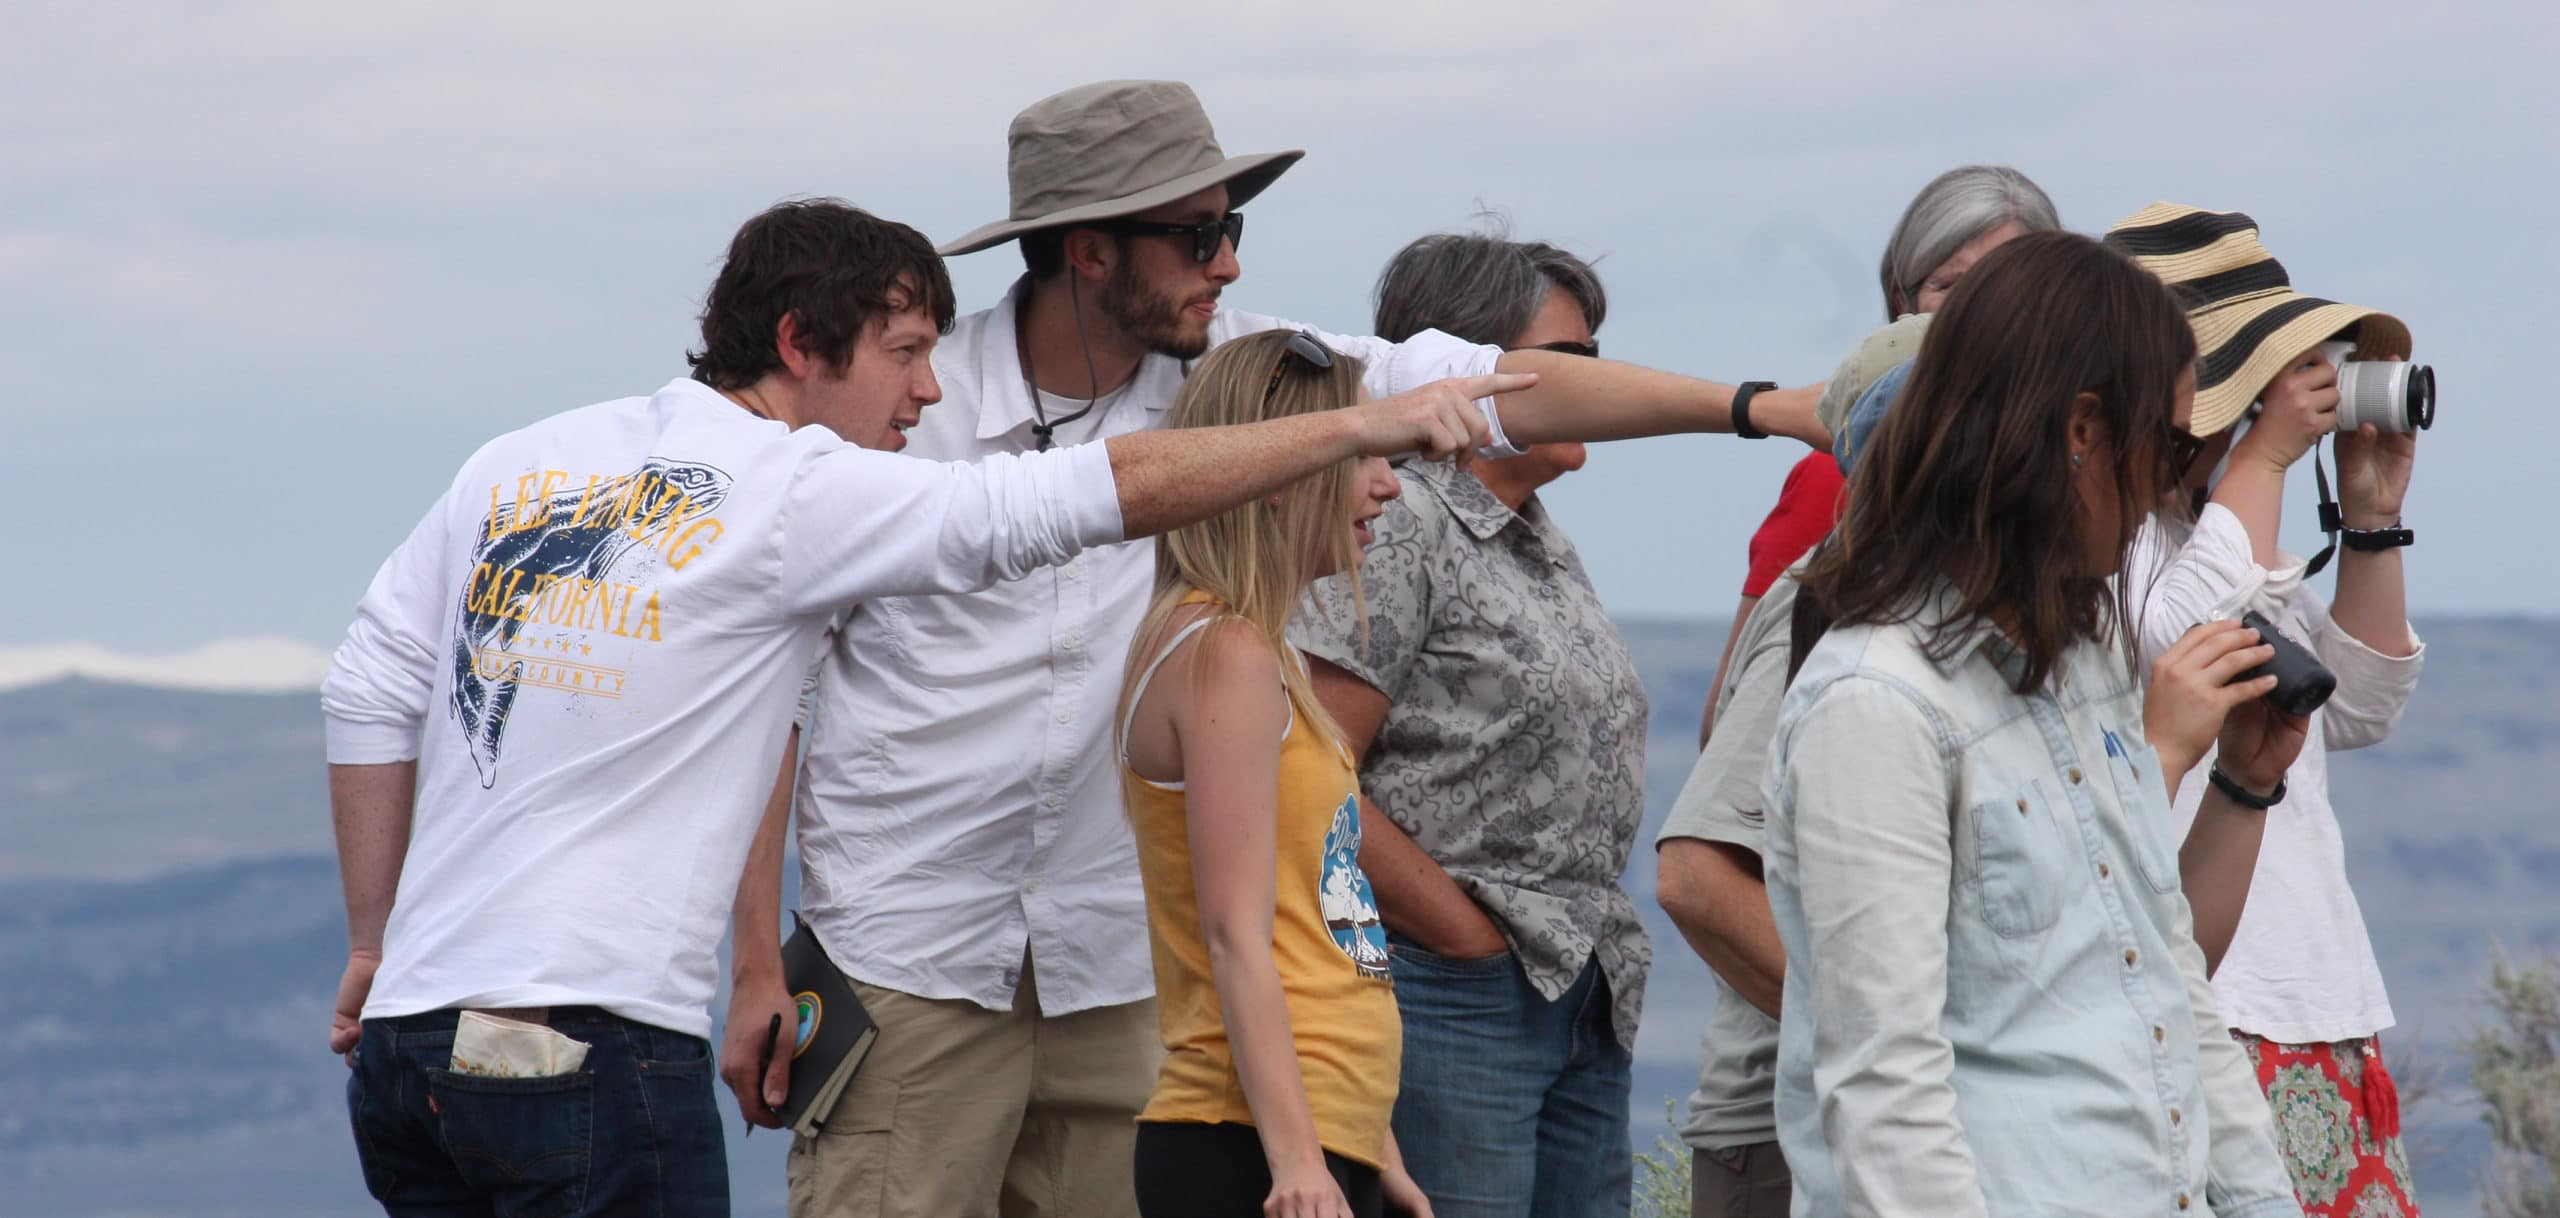 Nine people are looking at something interesting off in the distance, that we cannot see, and two people are pointing it out to one of the people, one is looking with binoculars, and one person is taking a photograph.